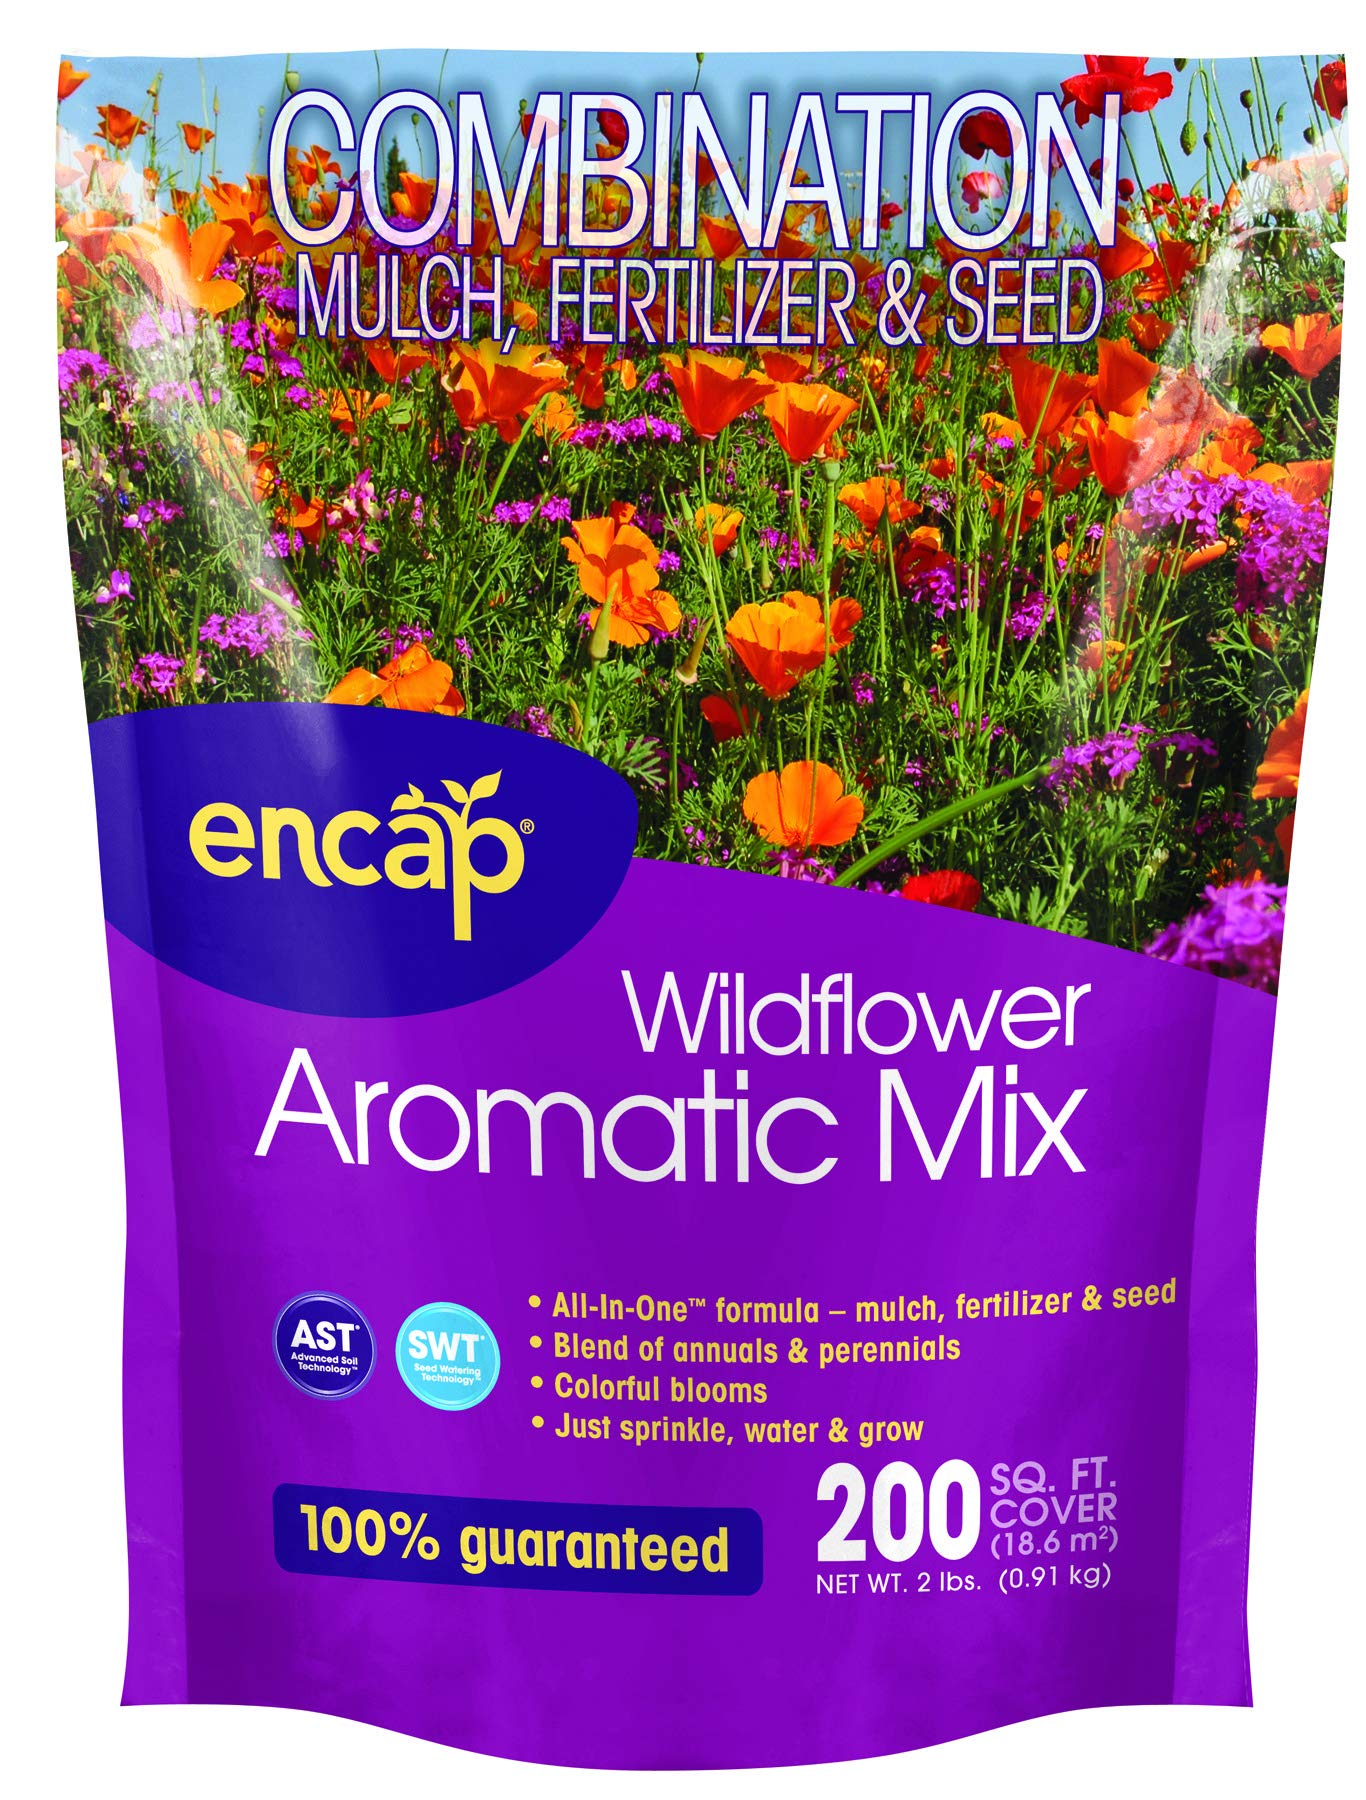 Wildflower Aromatic Mix from Encap - 4-in-1 Mix, Annual and Perennial Seeds, Open-Pollinated, Non-GMO, with Instructions for Planting a Beautiful Fragrant Garden